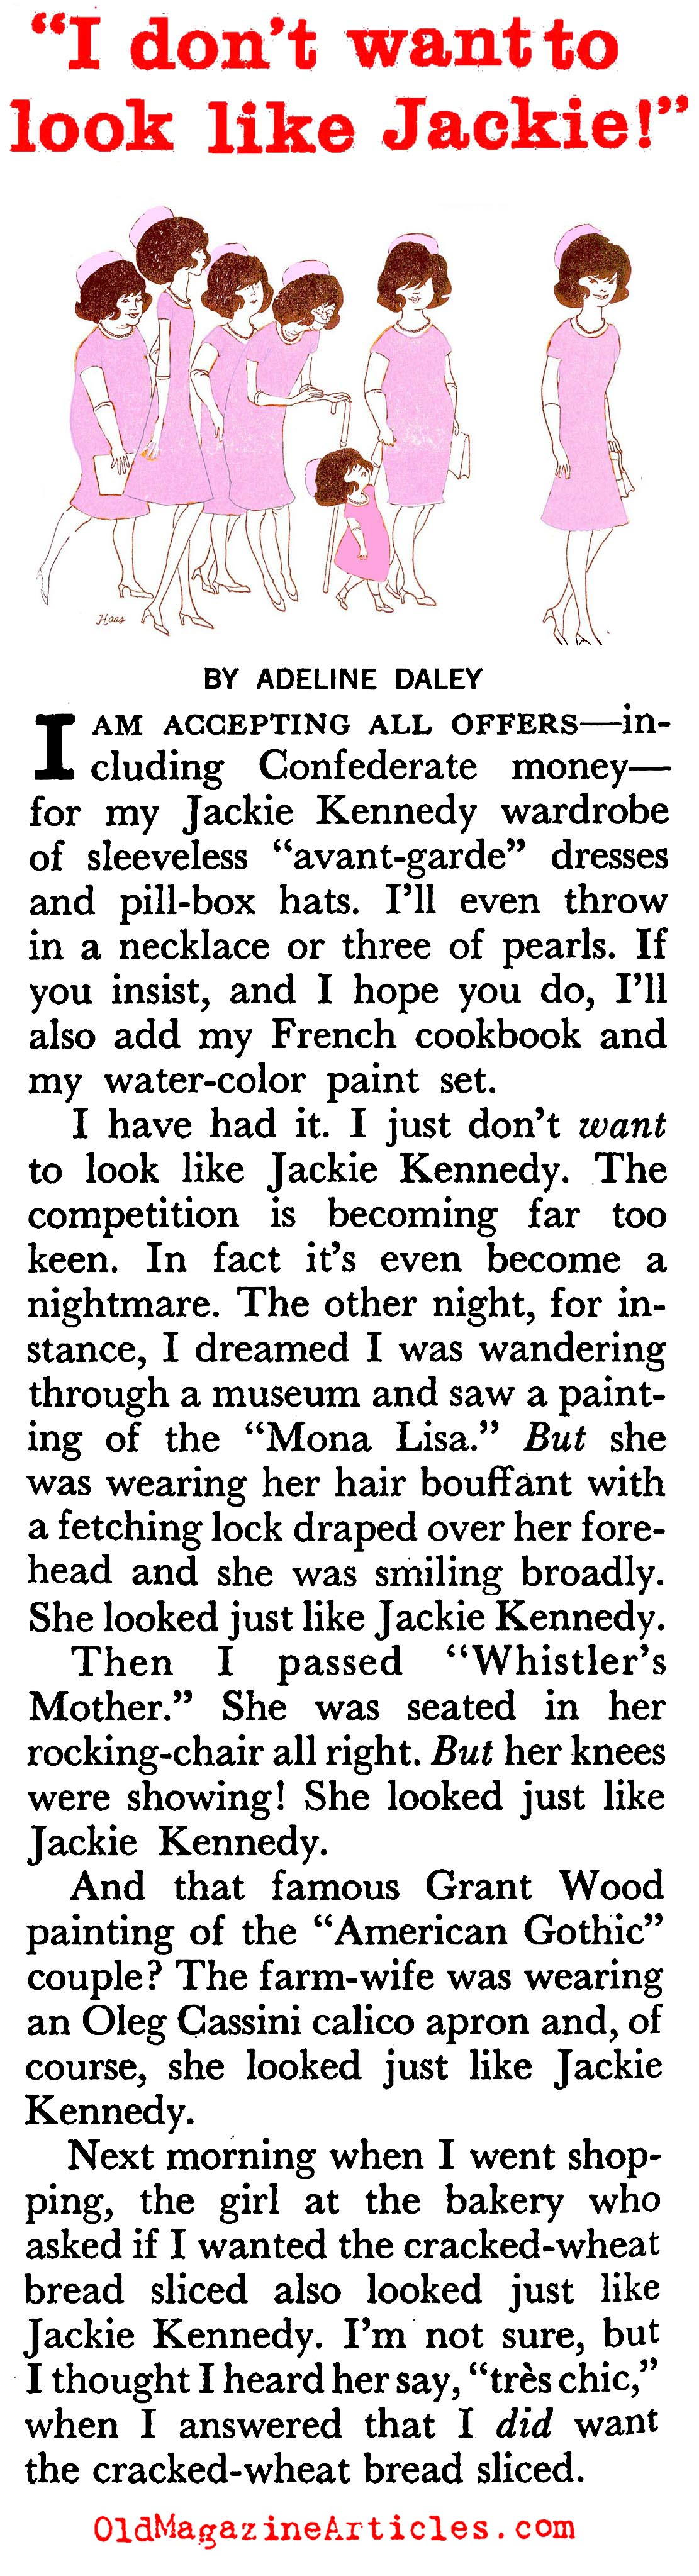 The Woman Who Didn't Want to Dress Like Jackie... (Coronet Magazine, 1961)